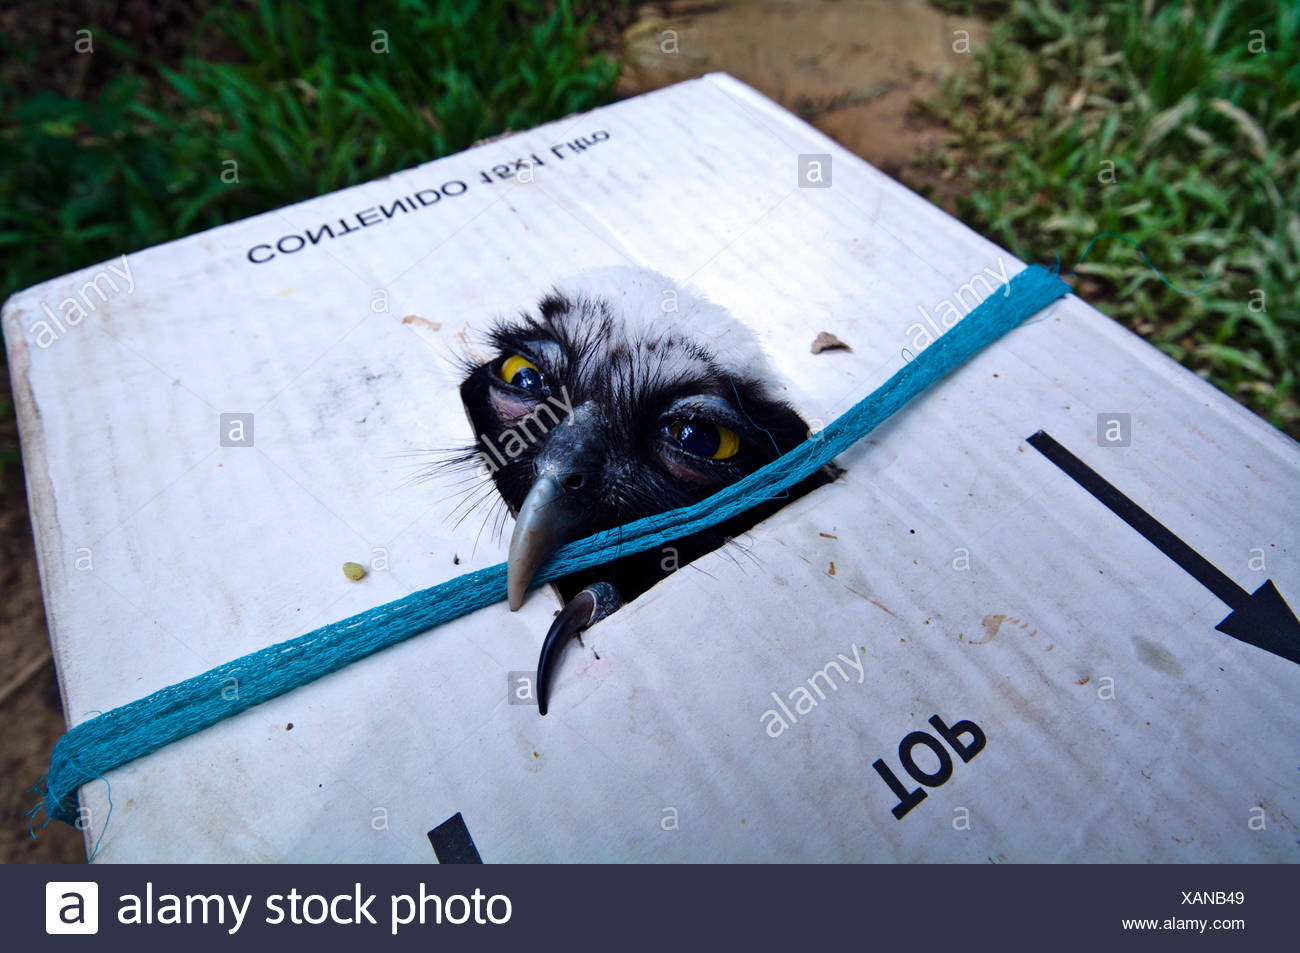 The defeated stare of a Spectacled Owl as it peers through a hole in a poachers cardboard box. - Stock Image